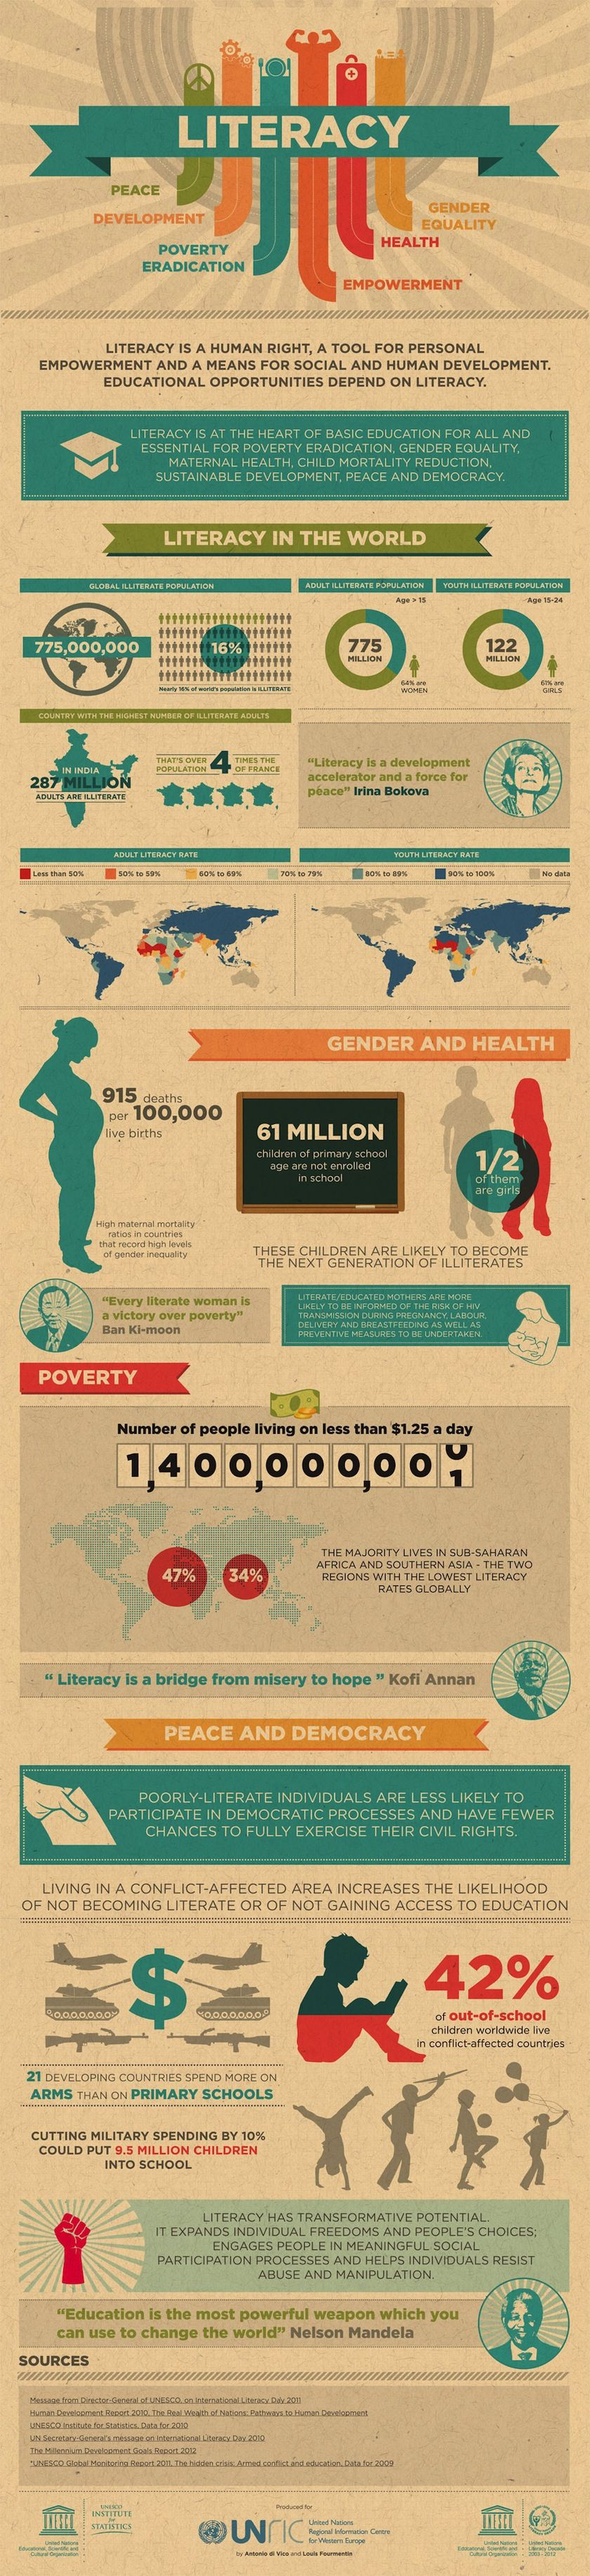 Literacy In World Infographic Visualizations